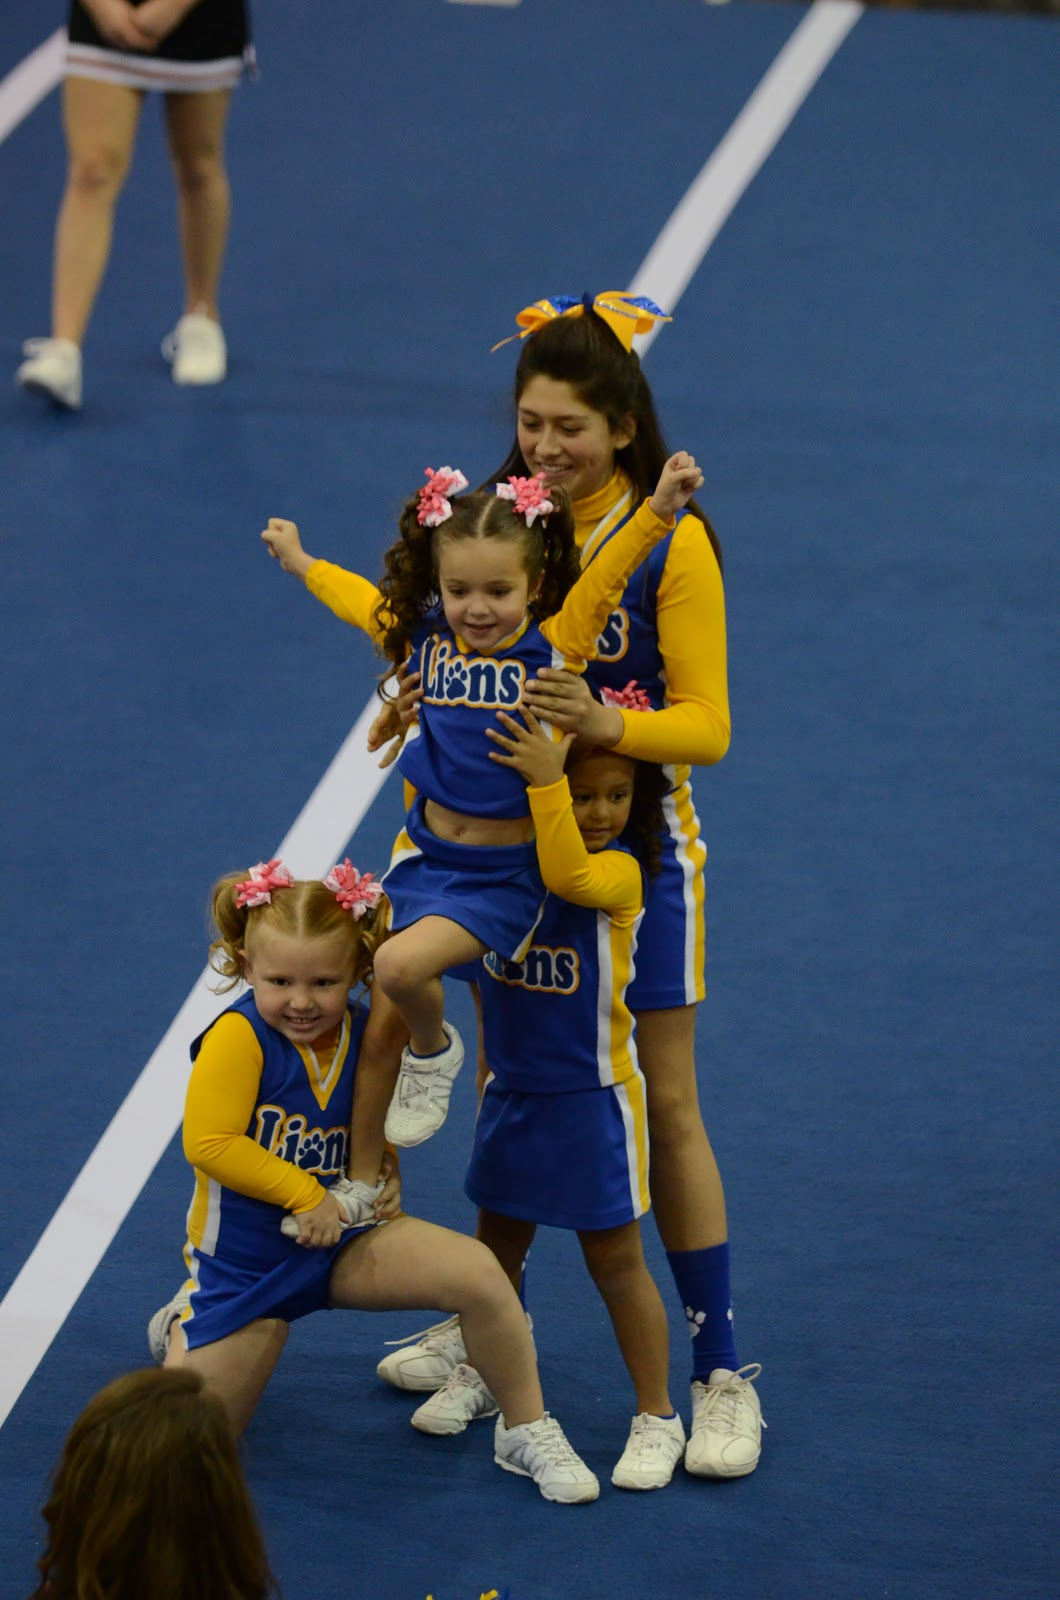 My Girls Cheerleading Competition 2011